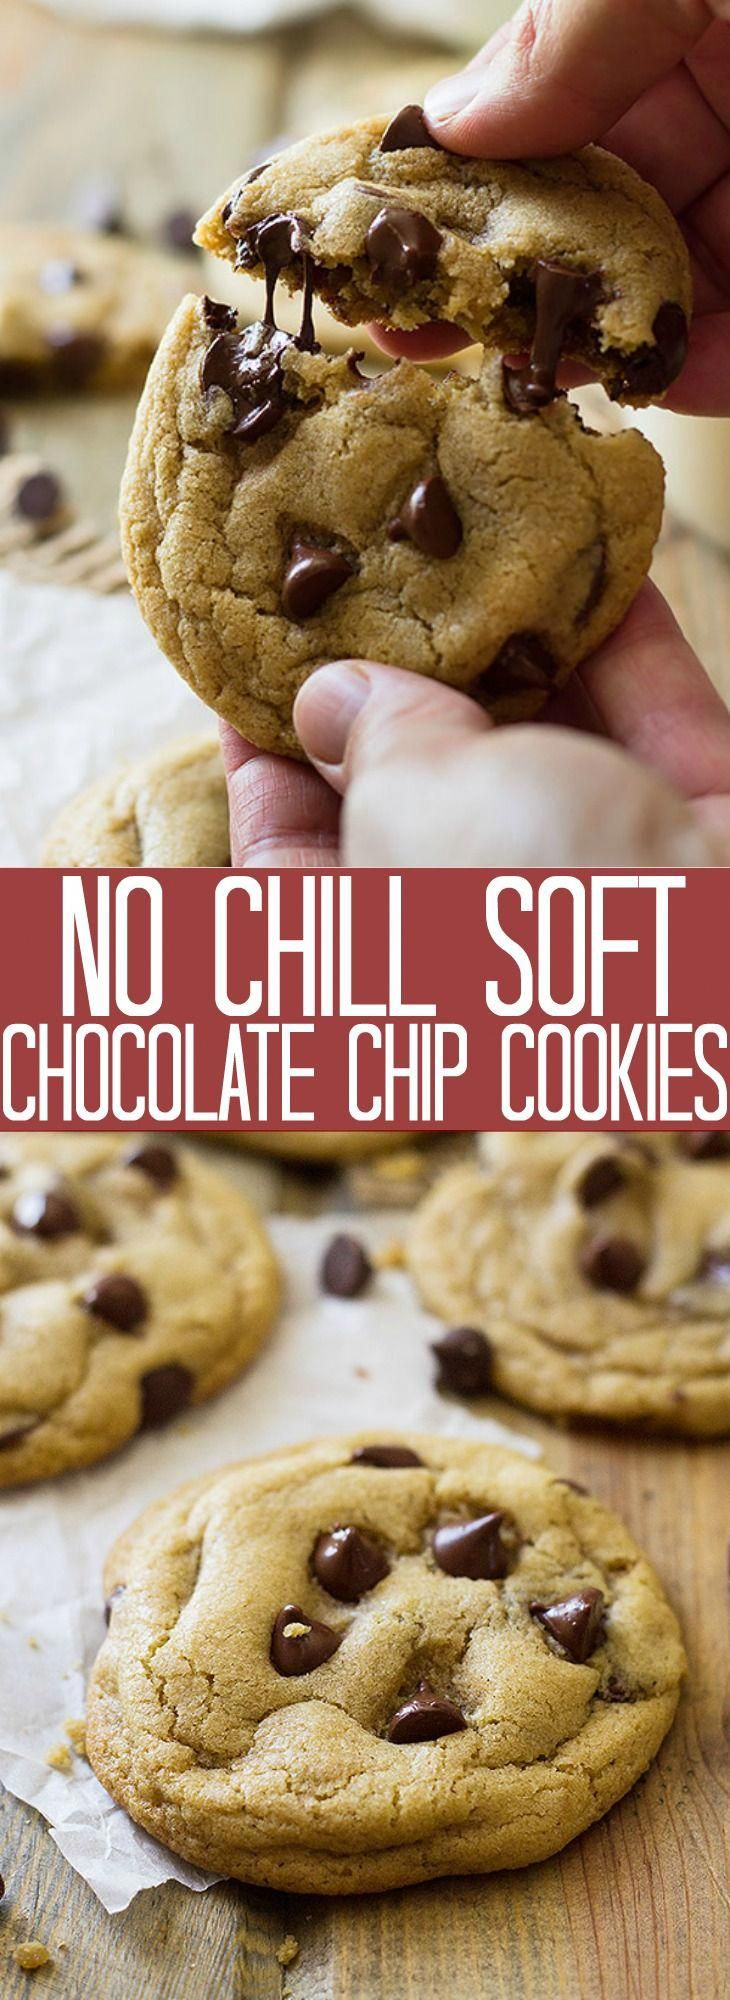 No Chill Soft Chocolate Chip Cookies | Countryside Cravings